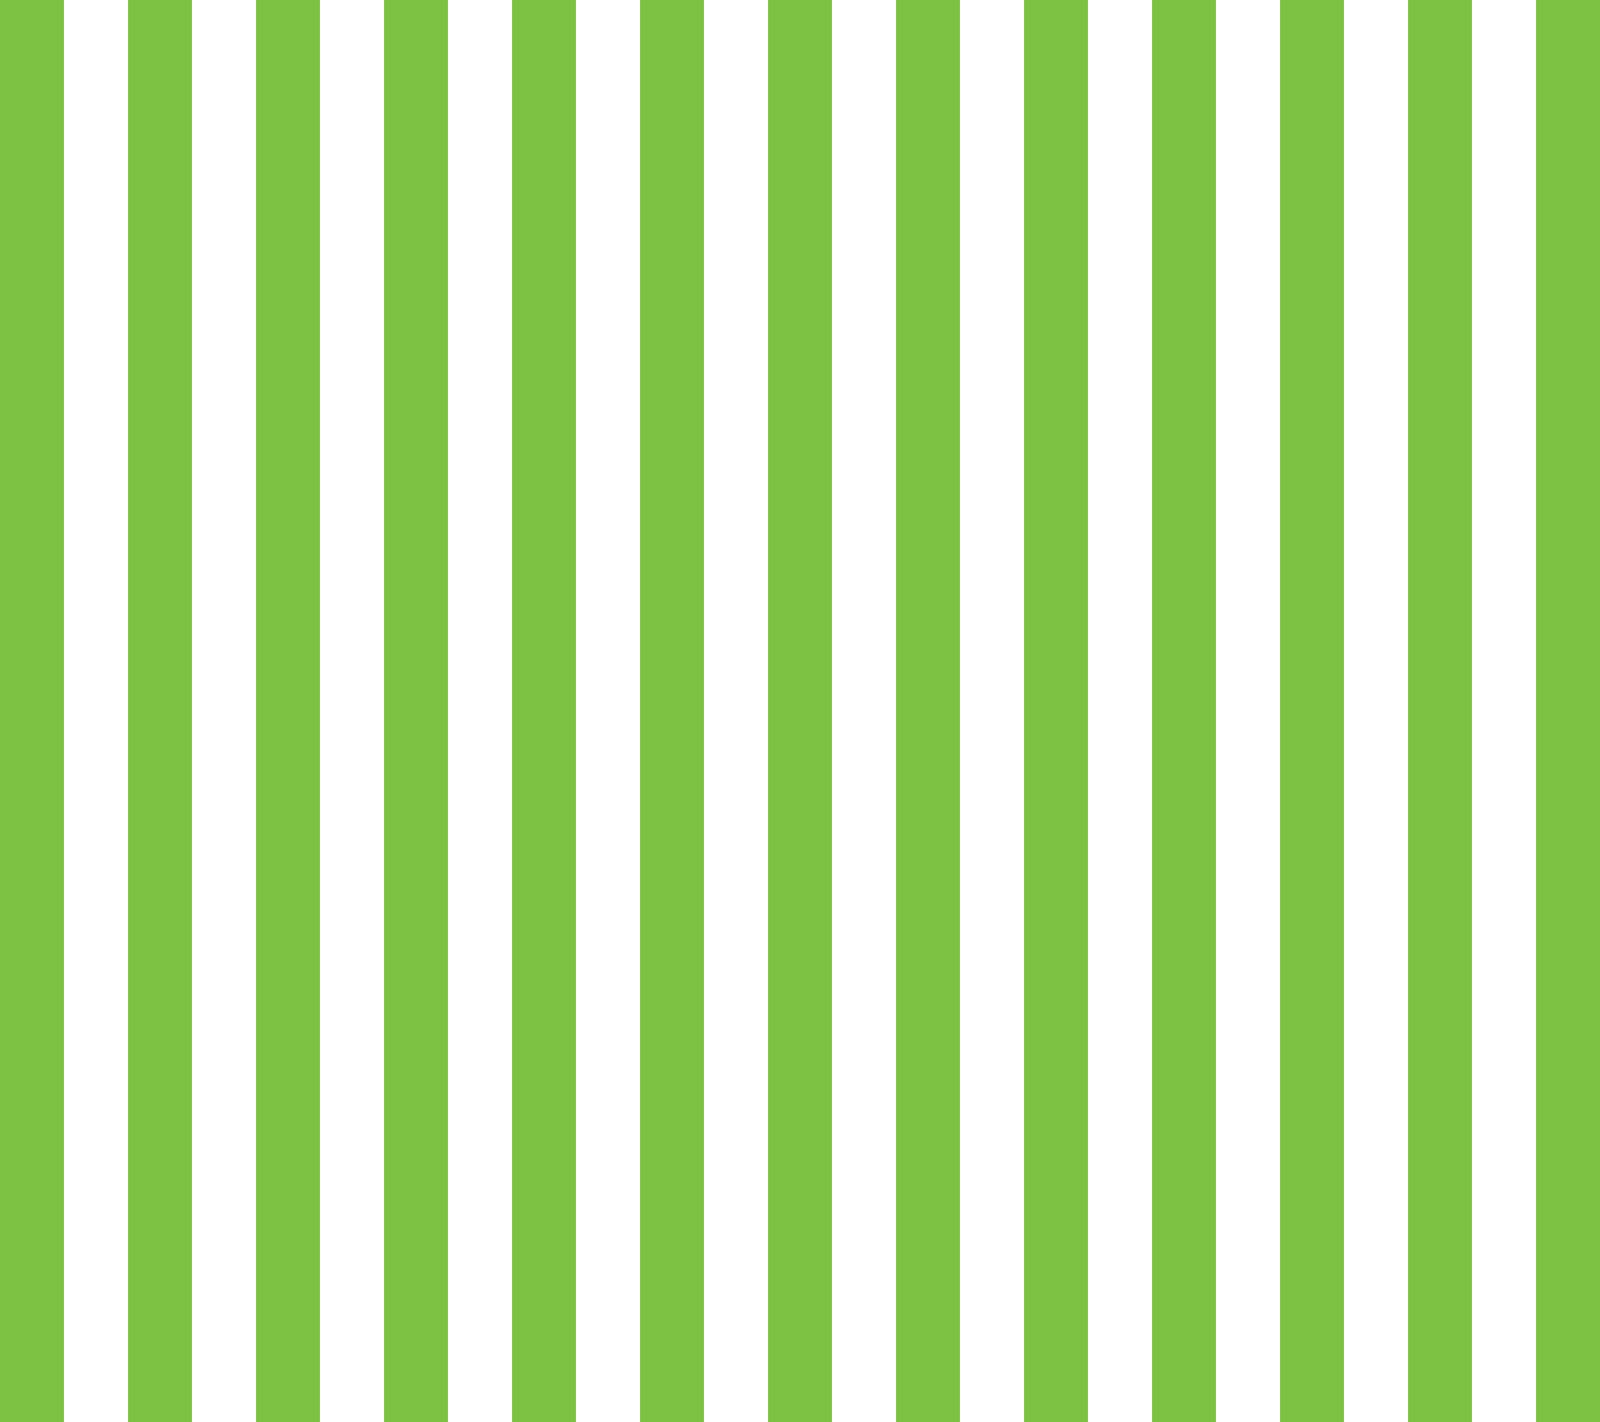 Stripes png. Green image